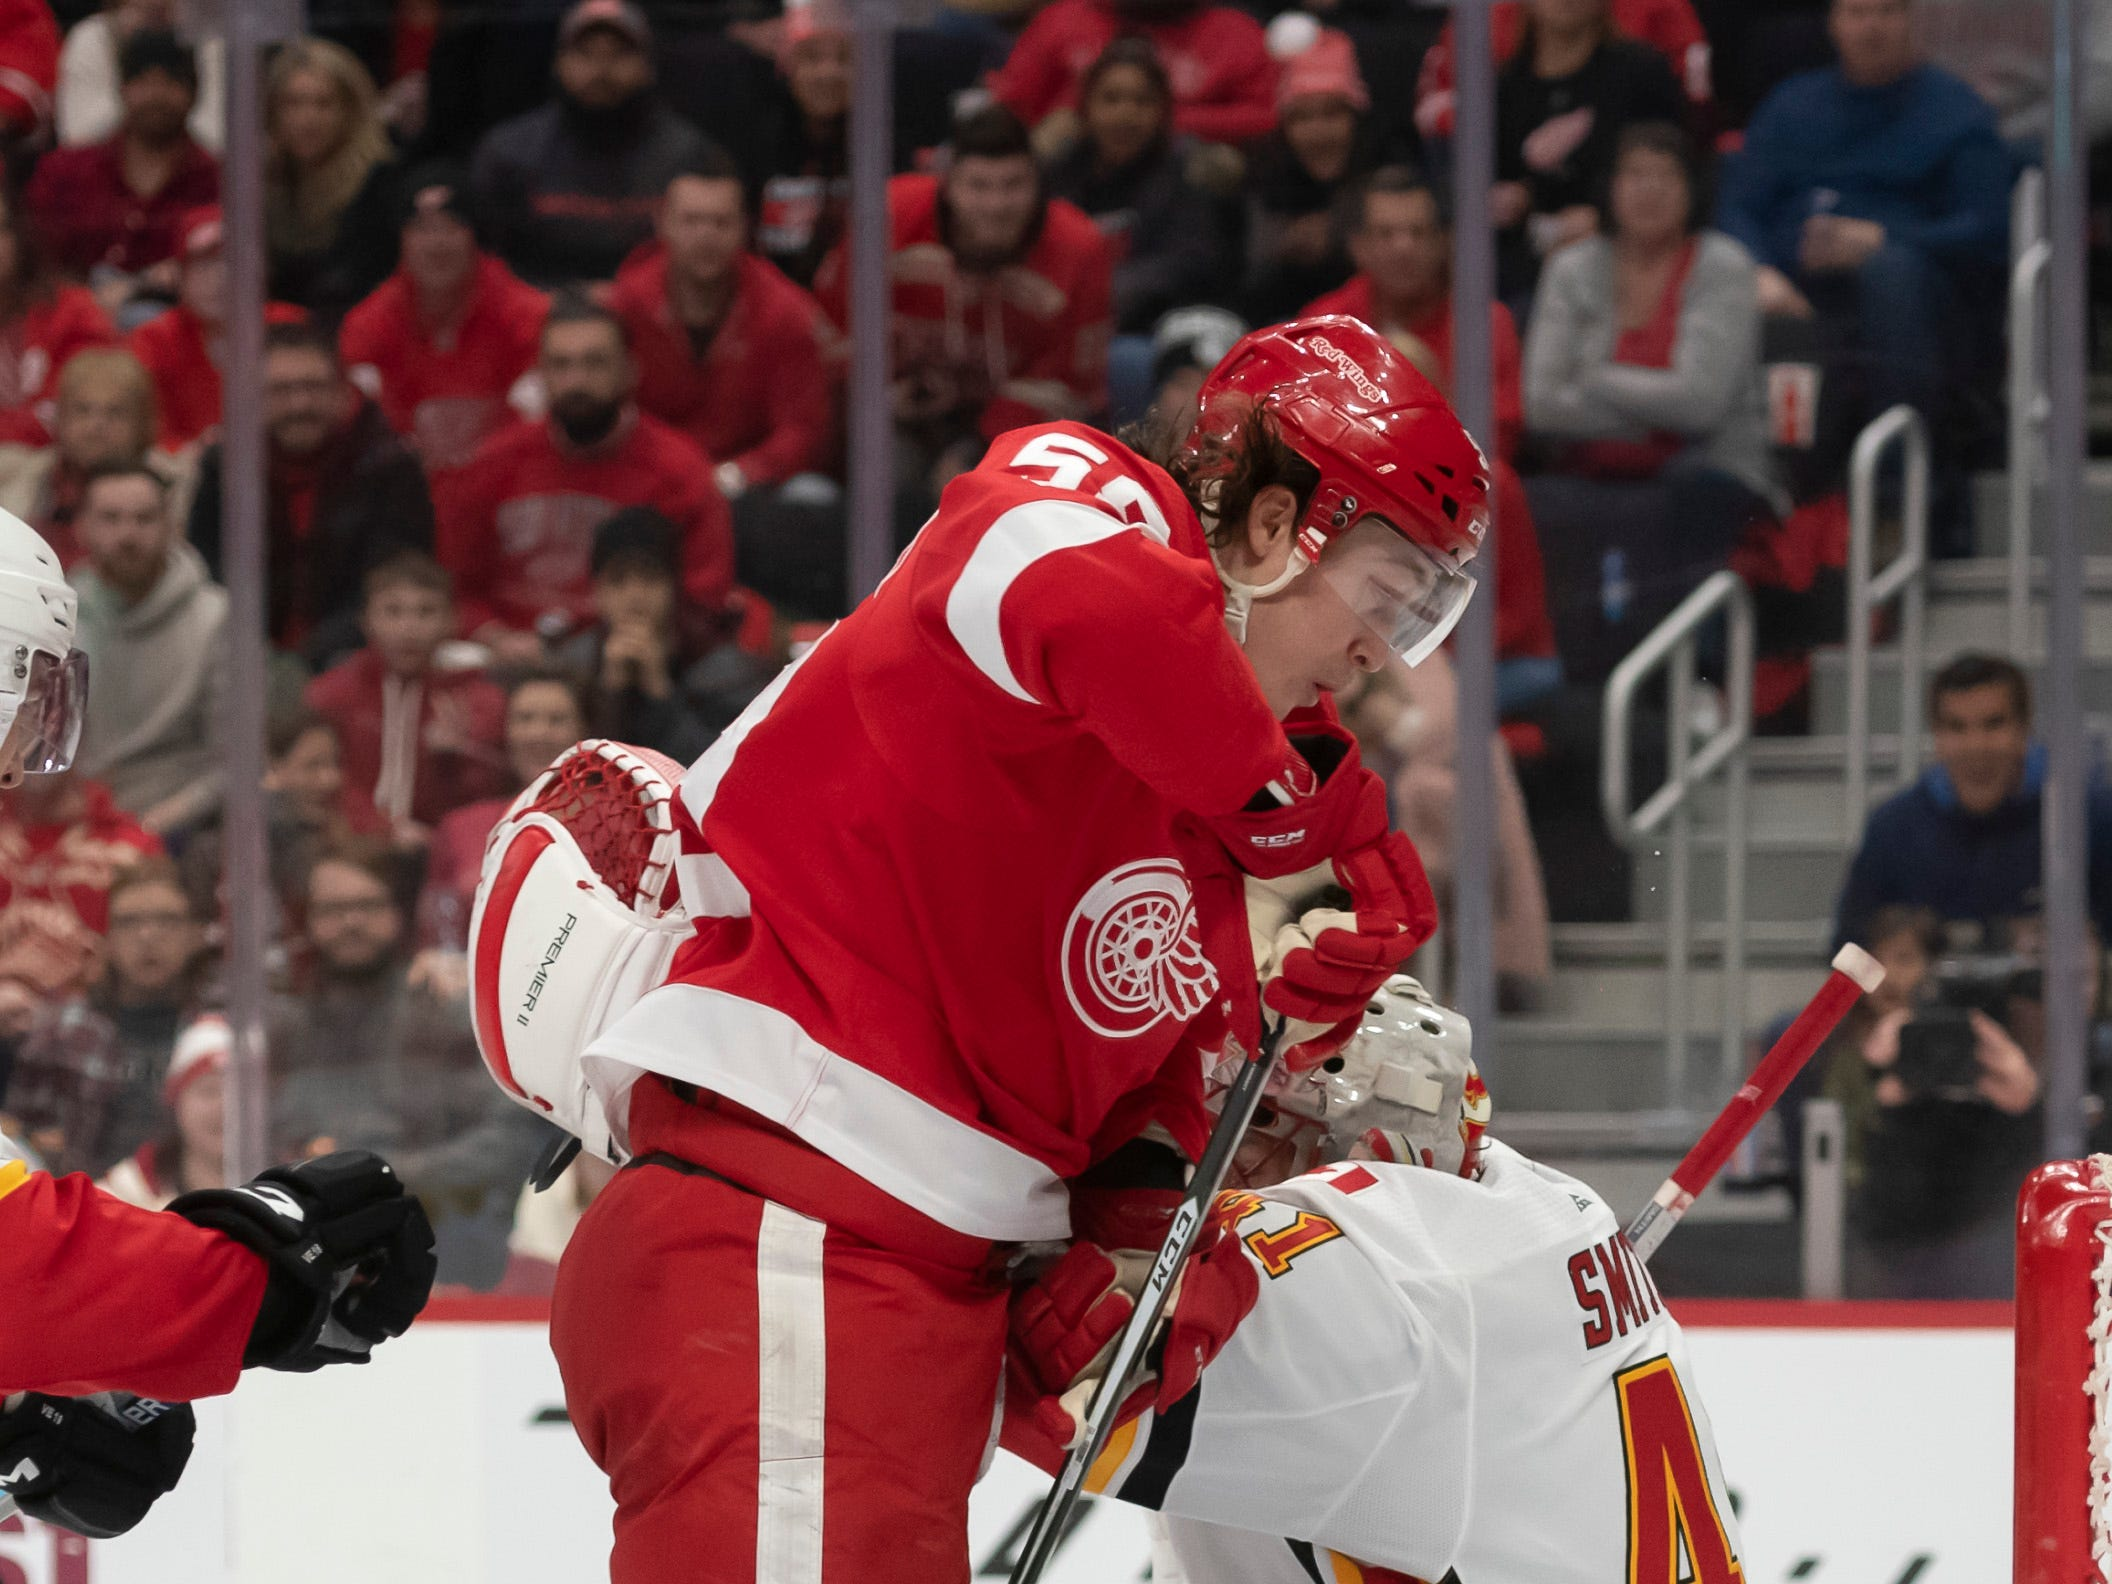 Detroit left wing Tyler Bertuzzi leaps into the air in front of Calgary goaltender Mike Smith in the third period.